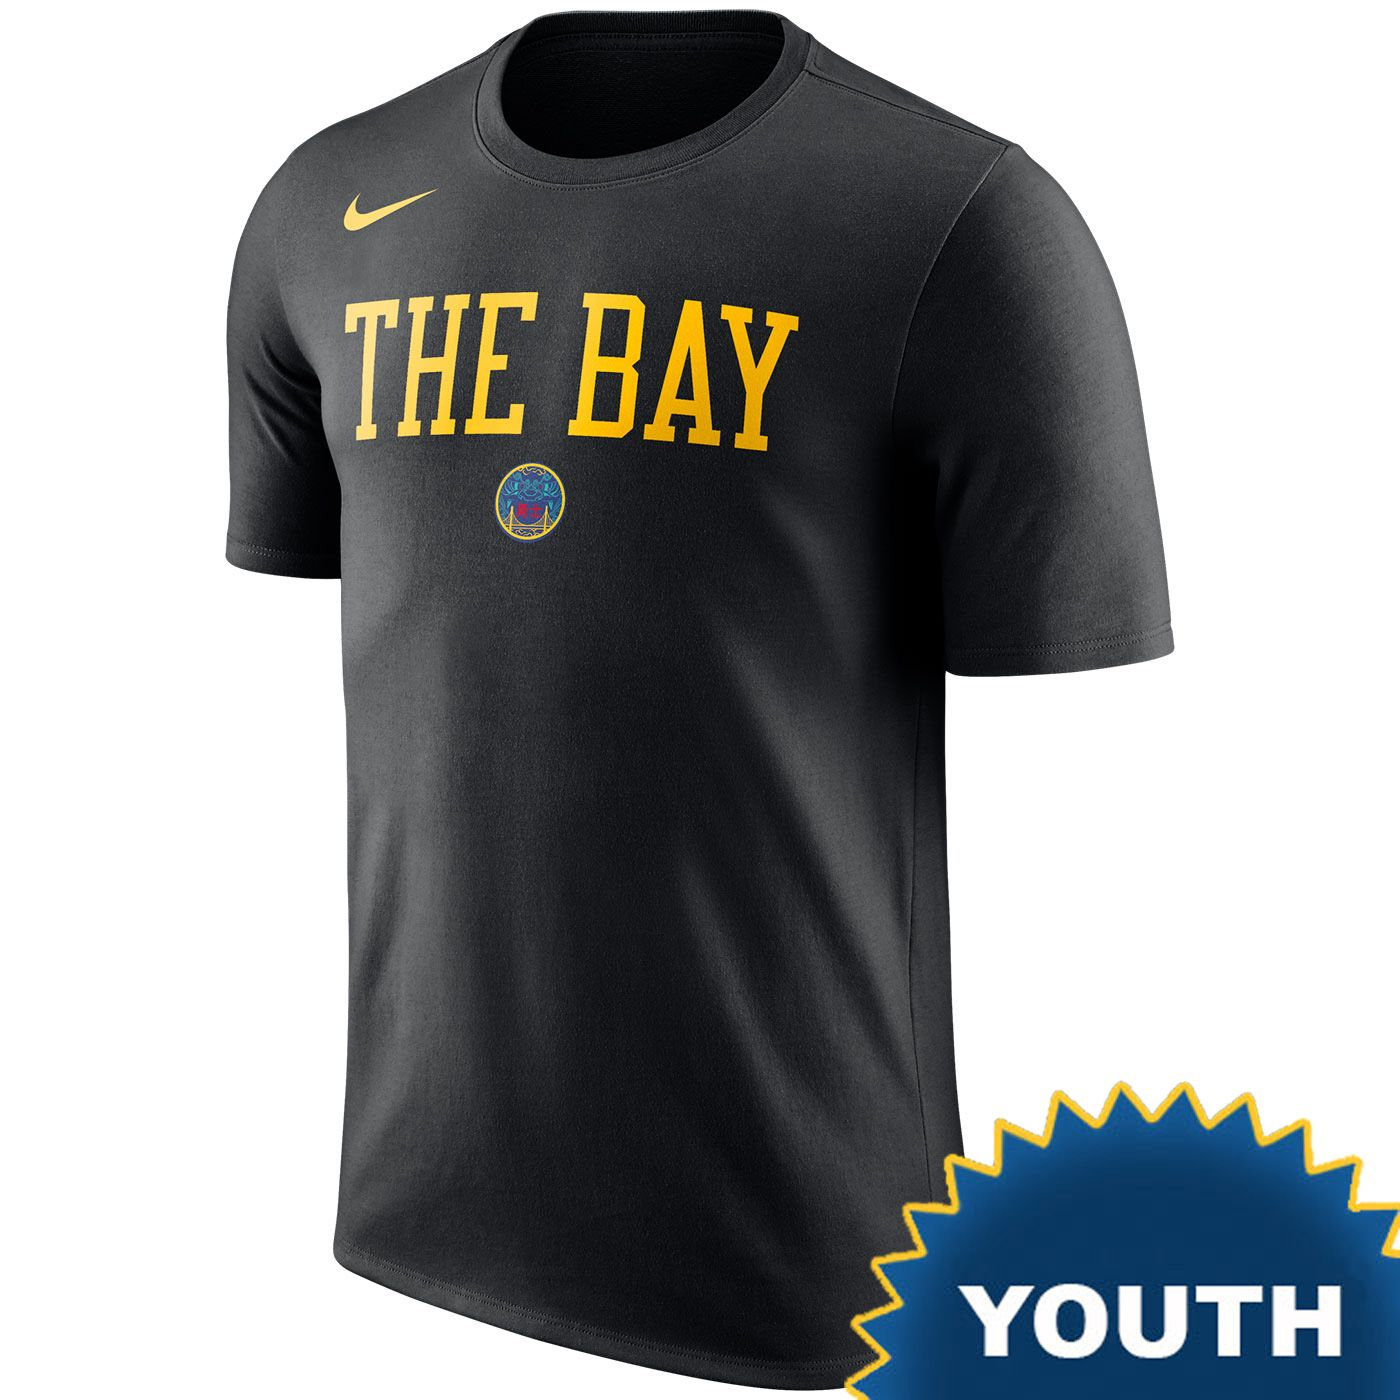 13499449ed8 Golden State Warriors Nike Dri-FIT Youth Chinese Heritage City Edition  The  Bay  Team Tee - Black